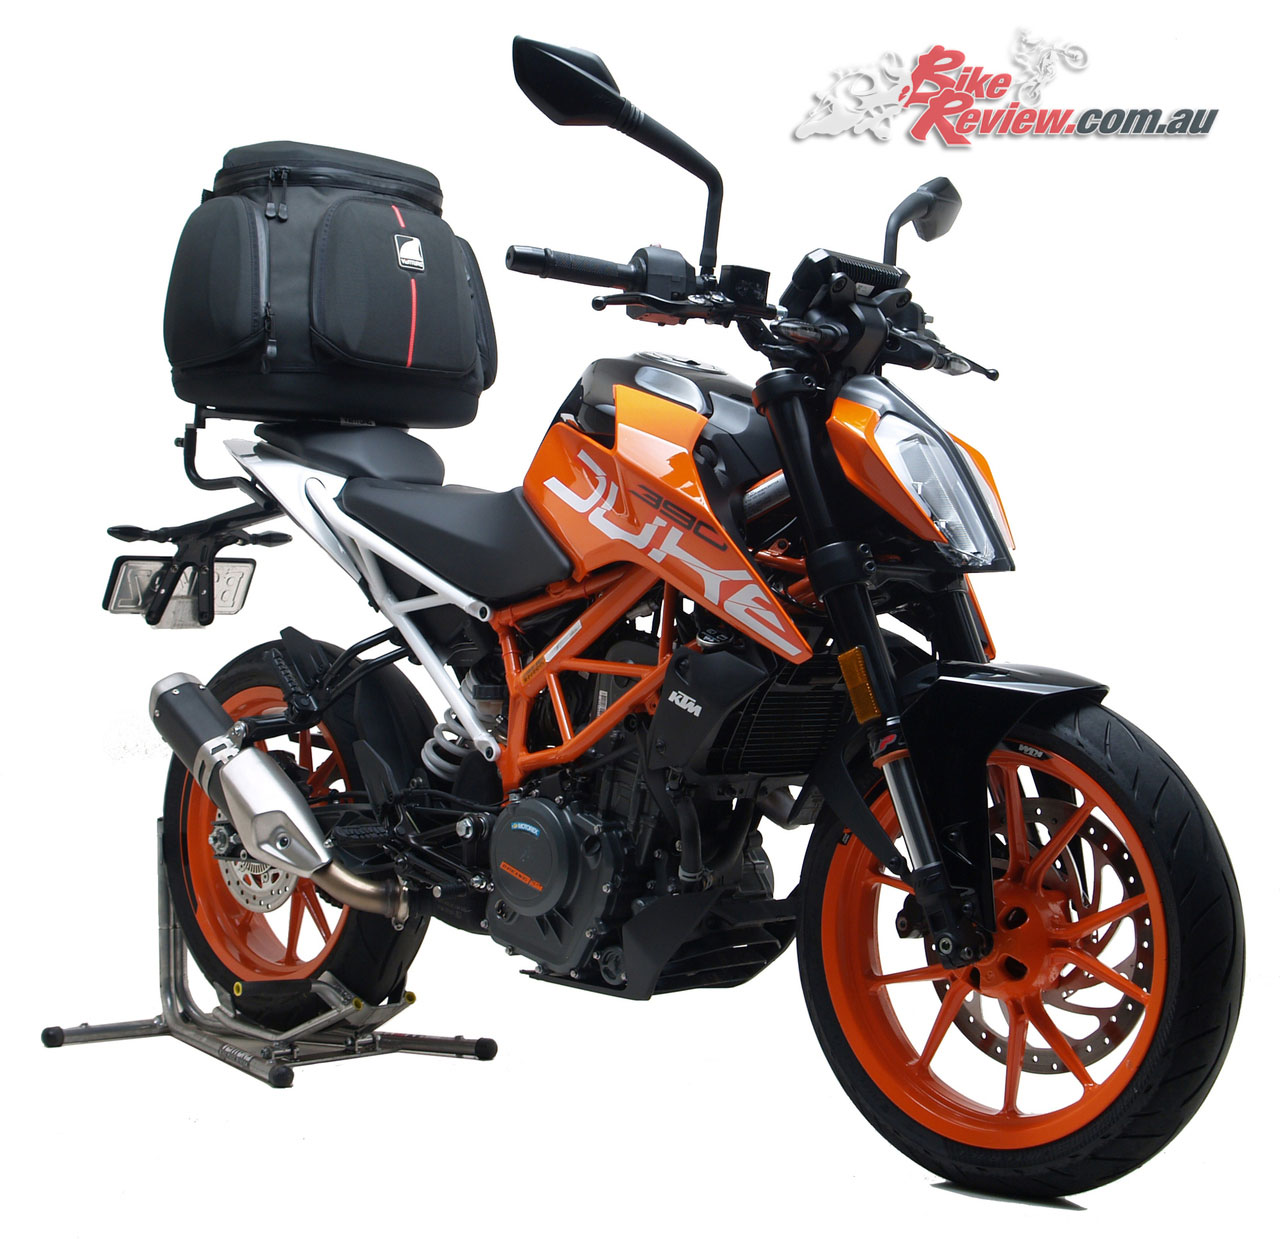 Ventura Mistral Mistral 47L Touring Kit on the KTM 390 Duke